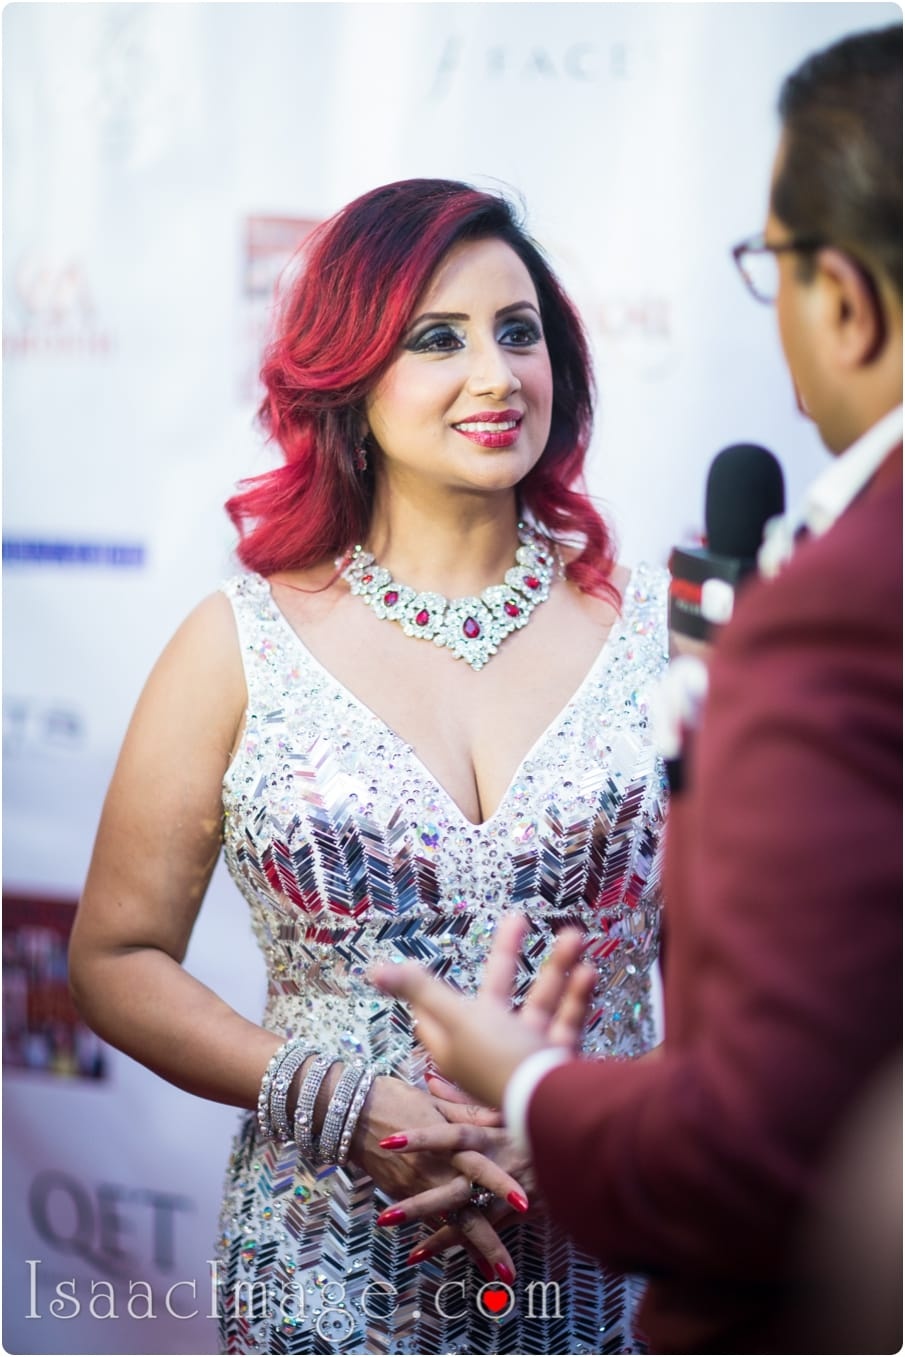 0072-Edit_ANOKHI media 11th Anniversary Event.jpg